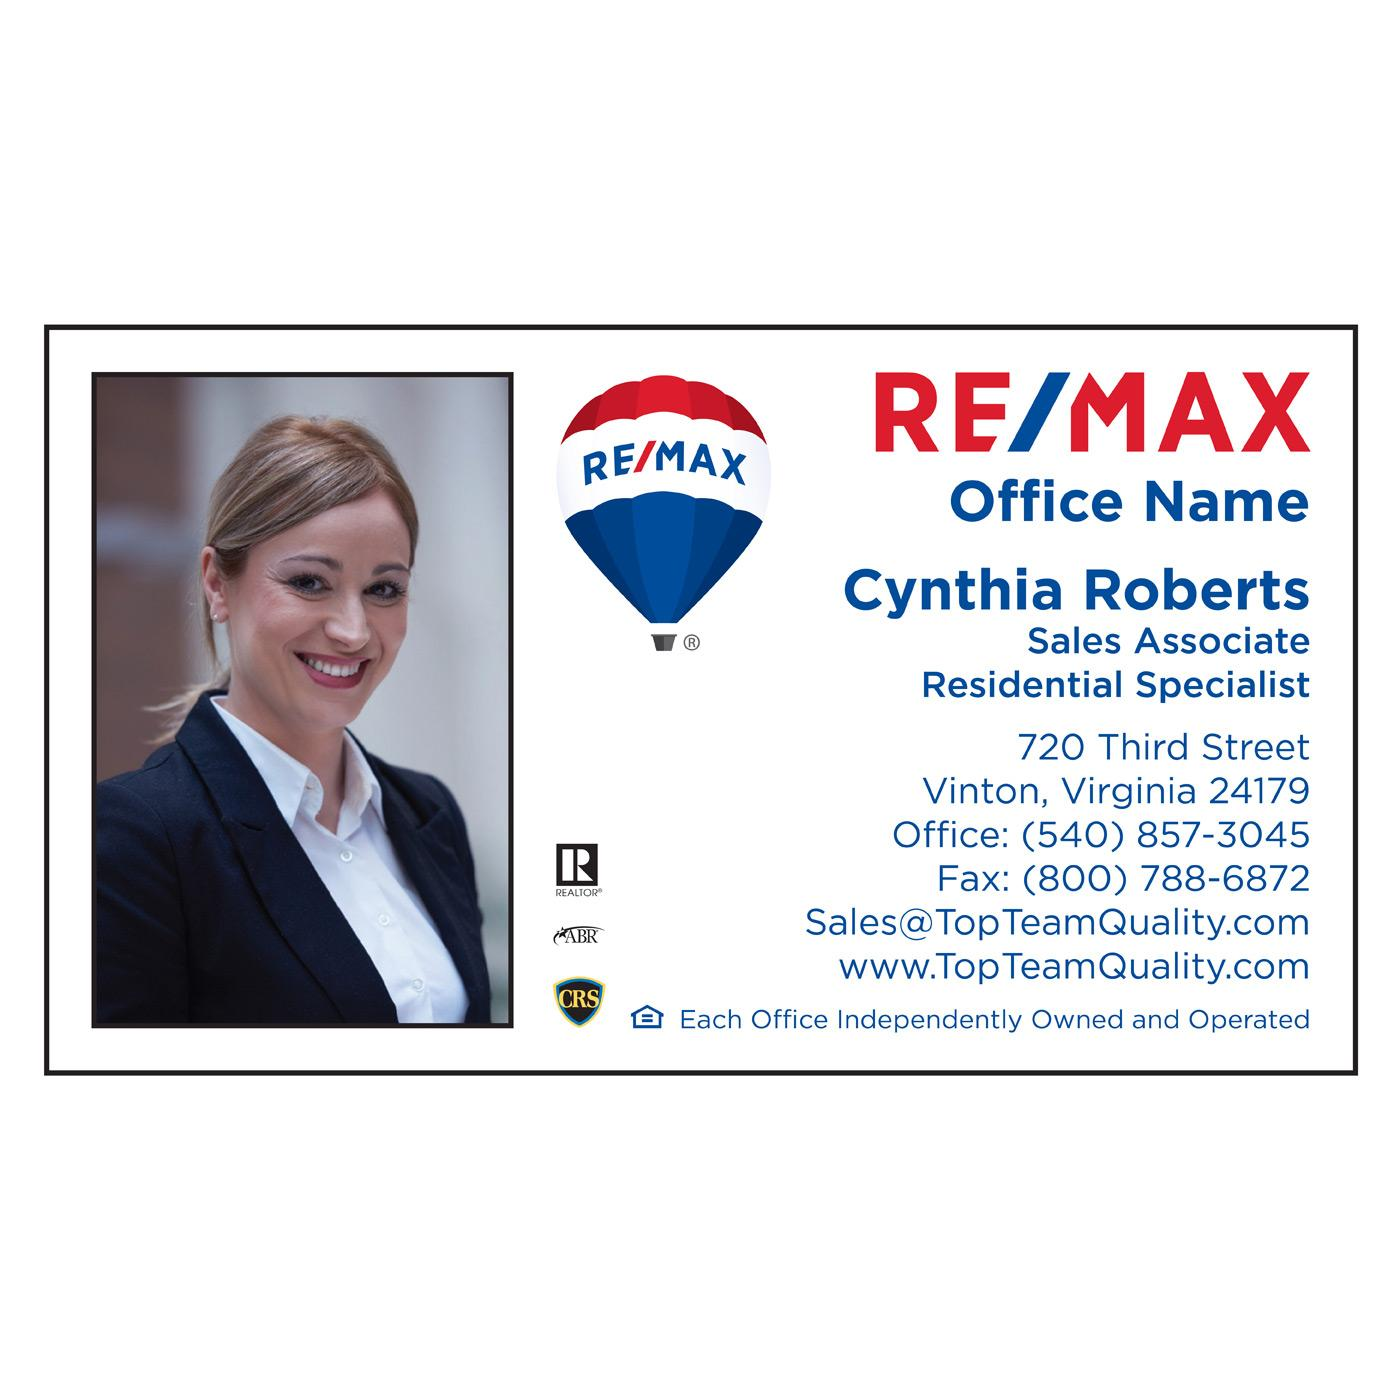 double-sided RE/MAX business card